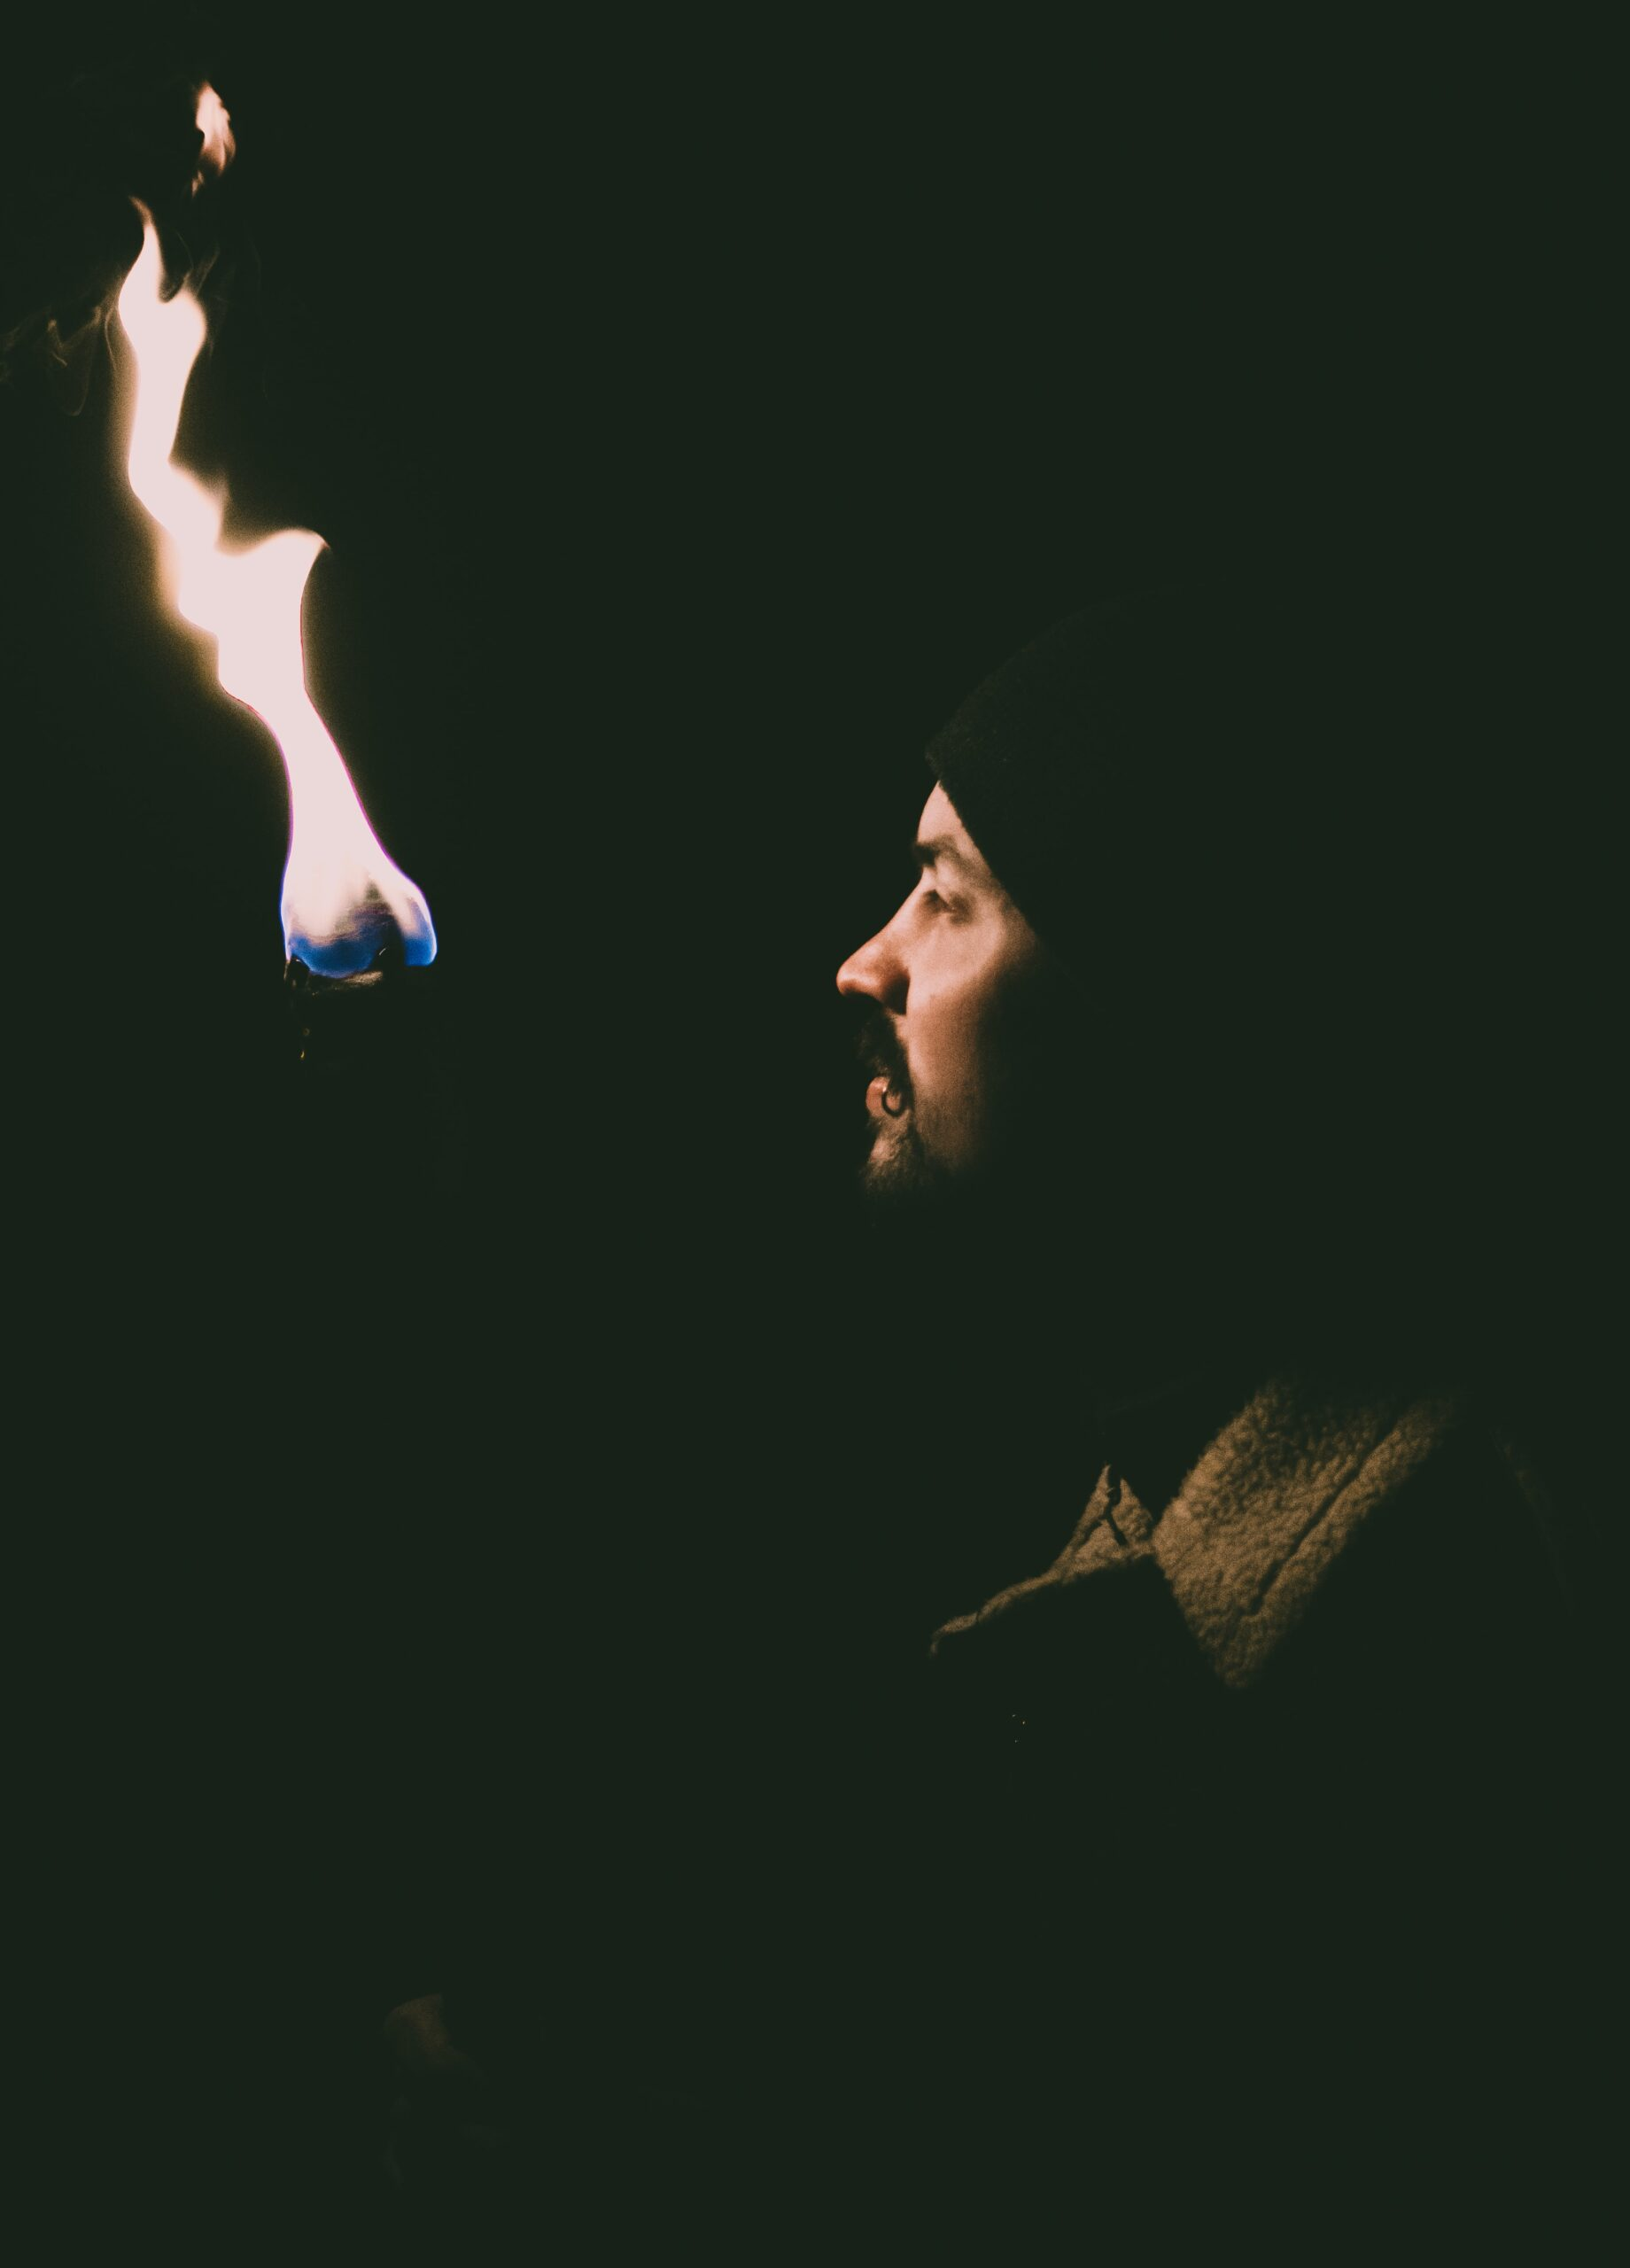 Man with torch The Bible Story of Gideon